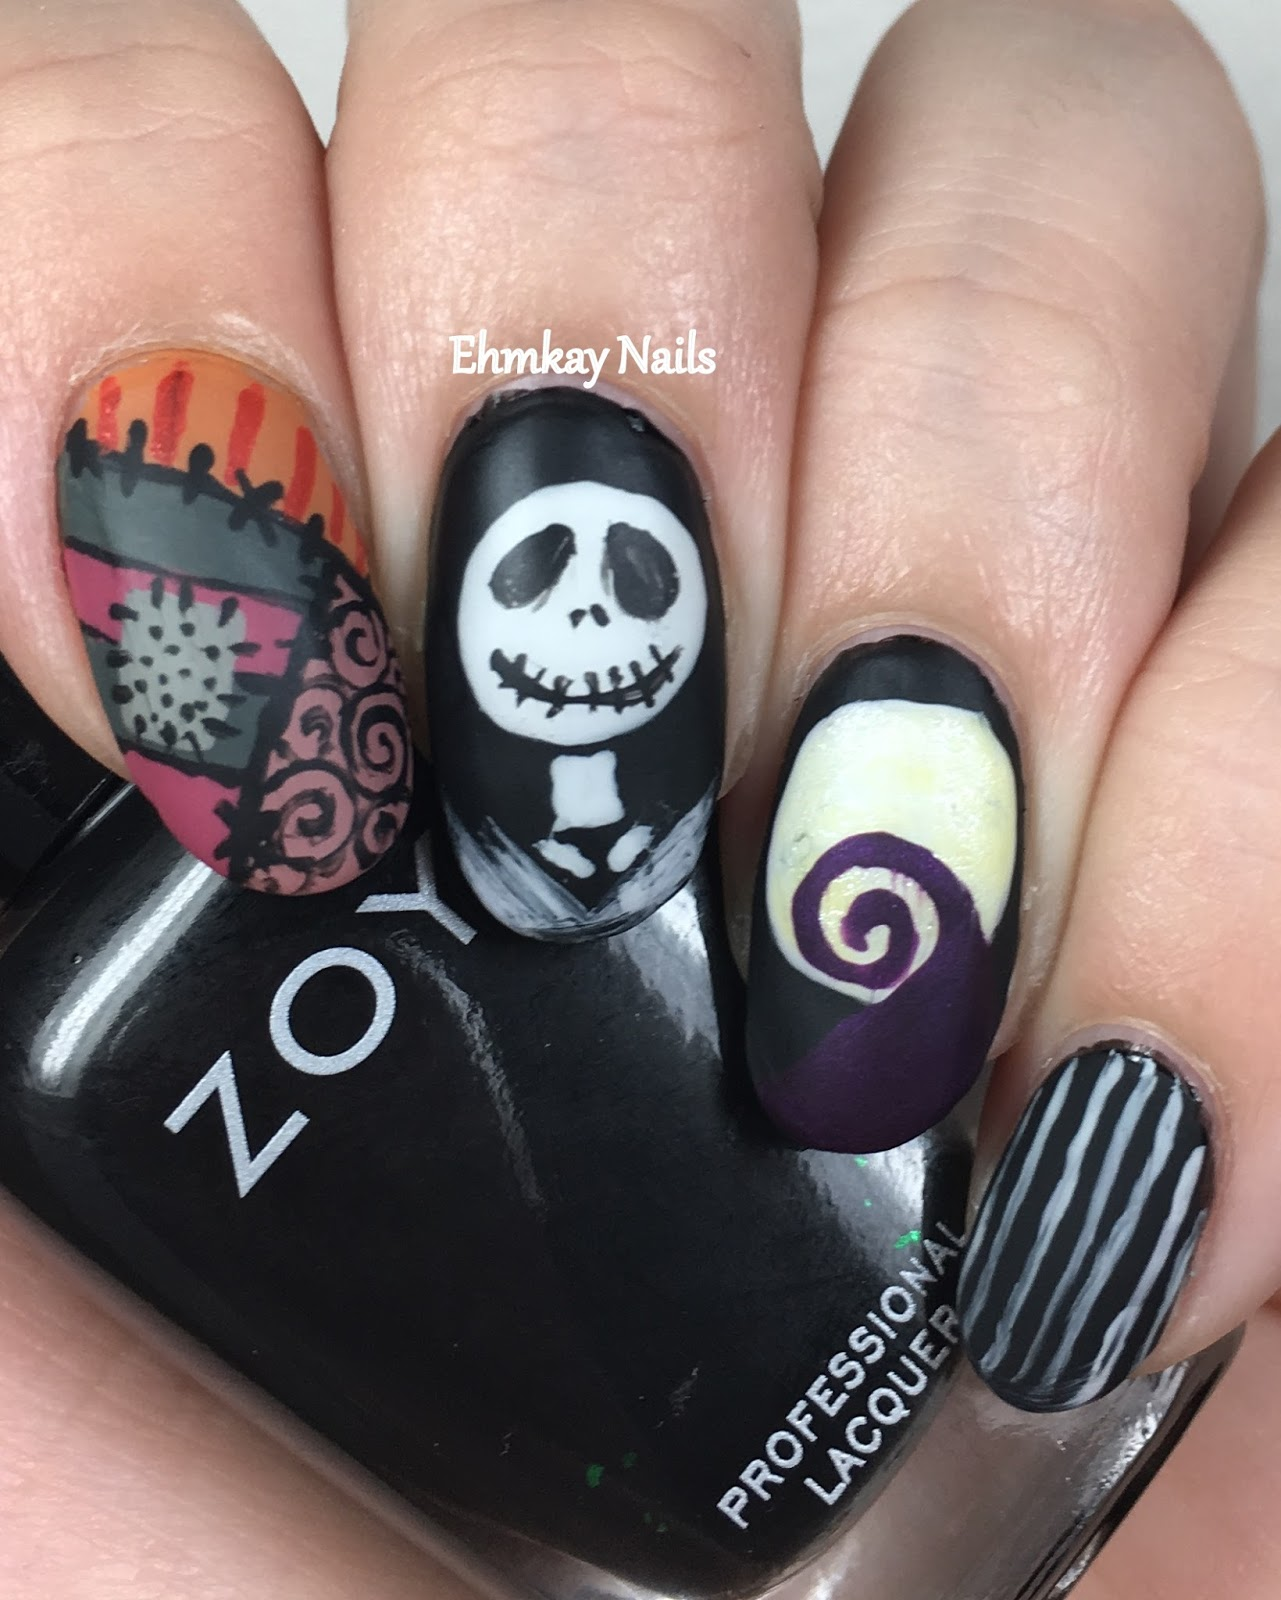 ehmkay nails: Halloween Nail Art from Ehmkay Nails, Recap!